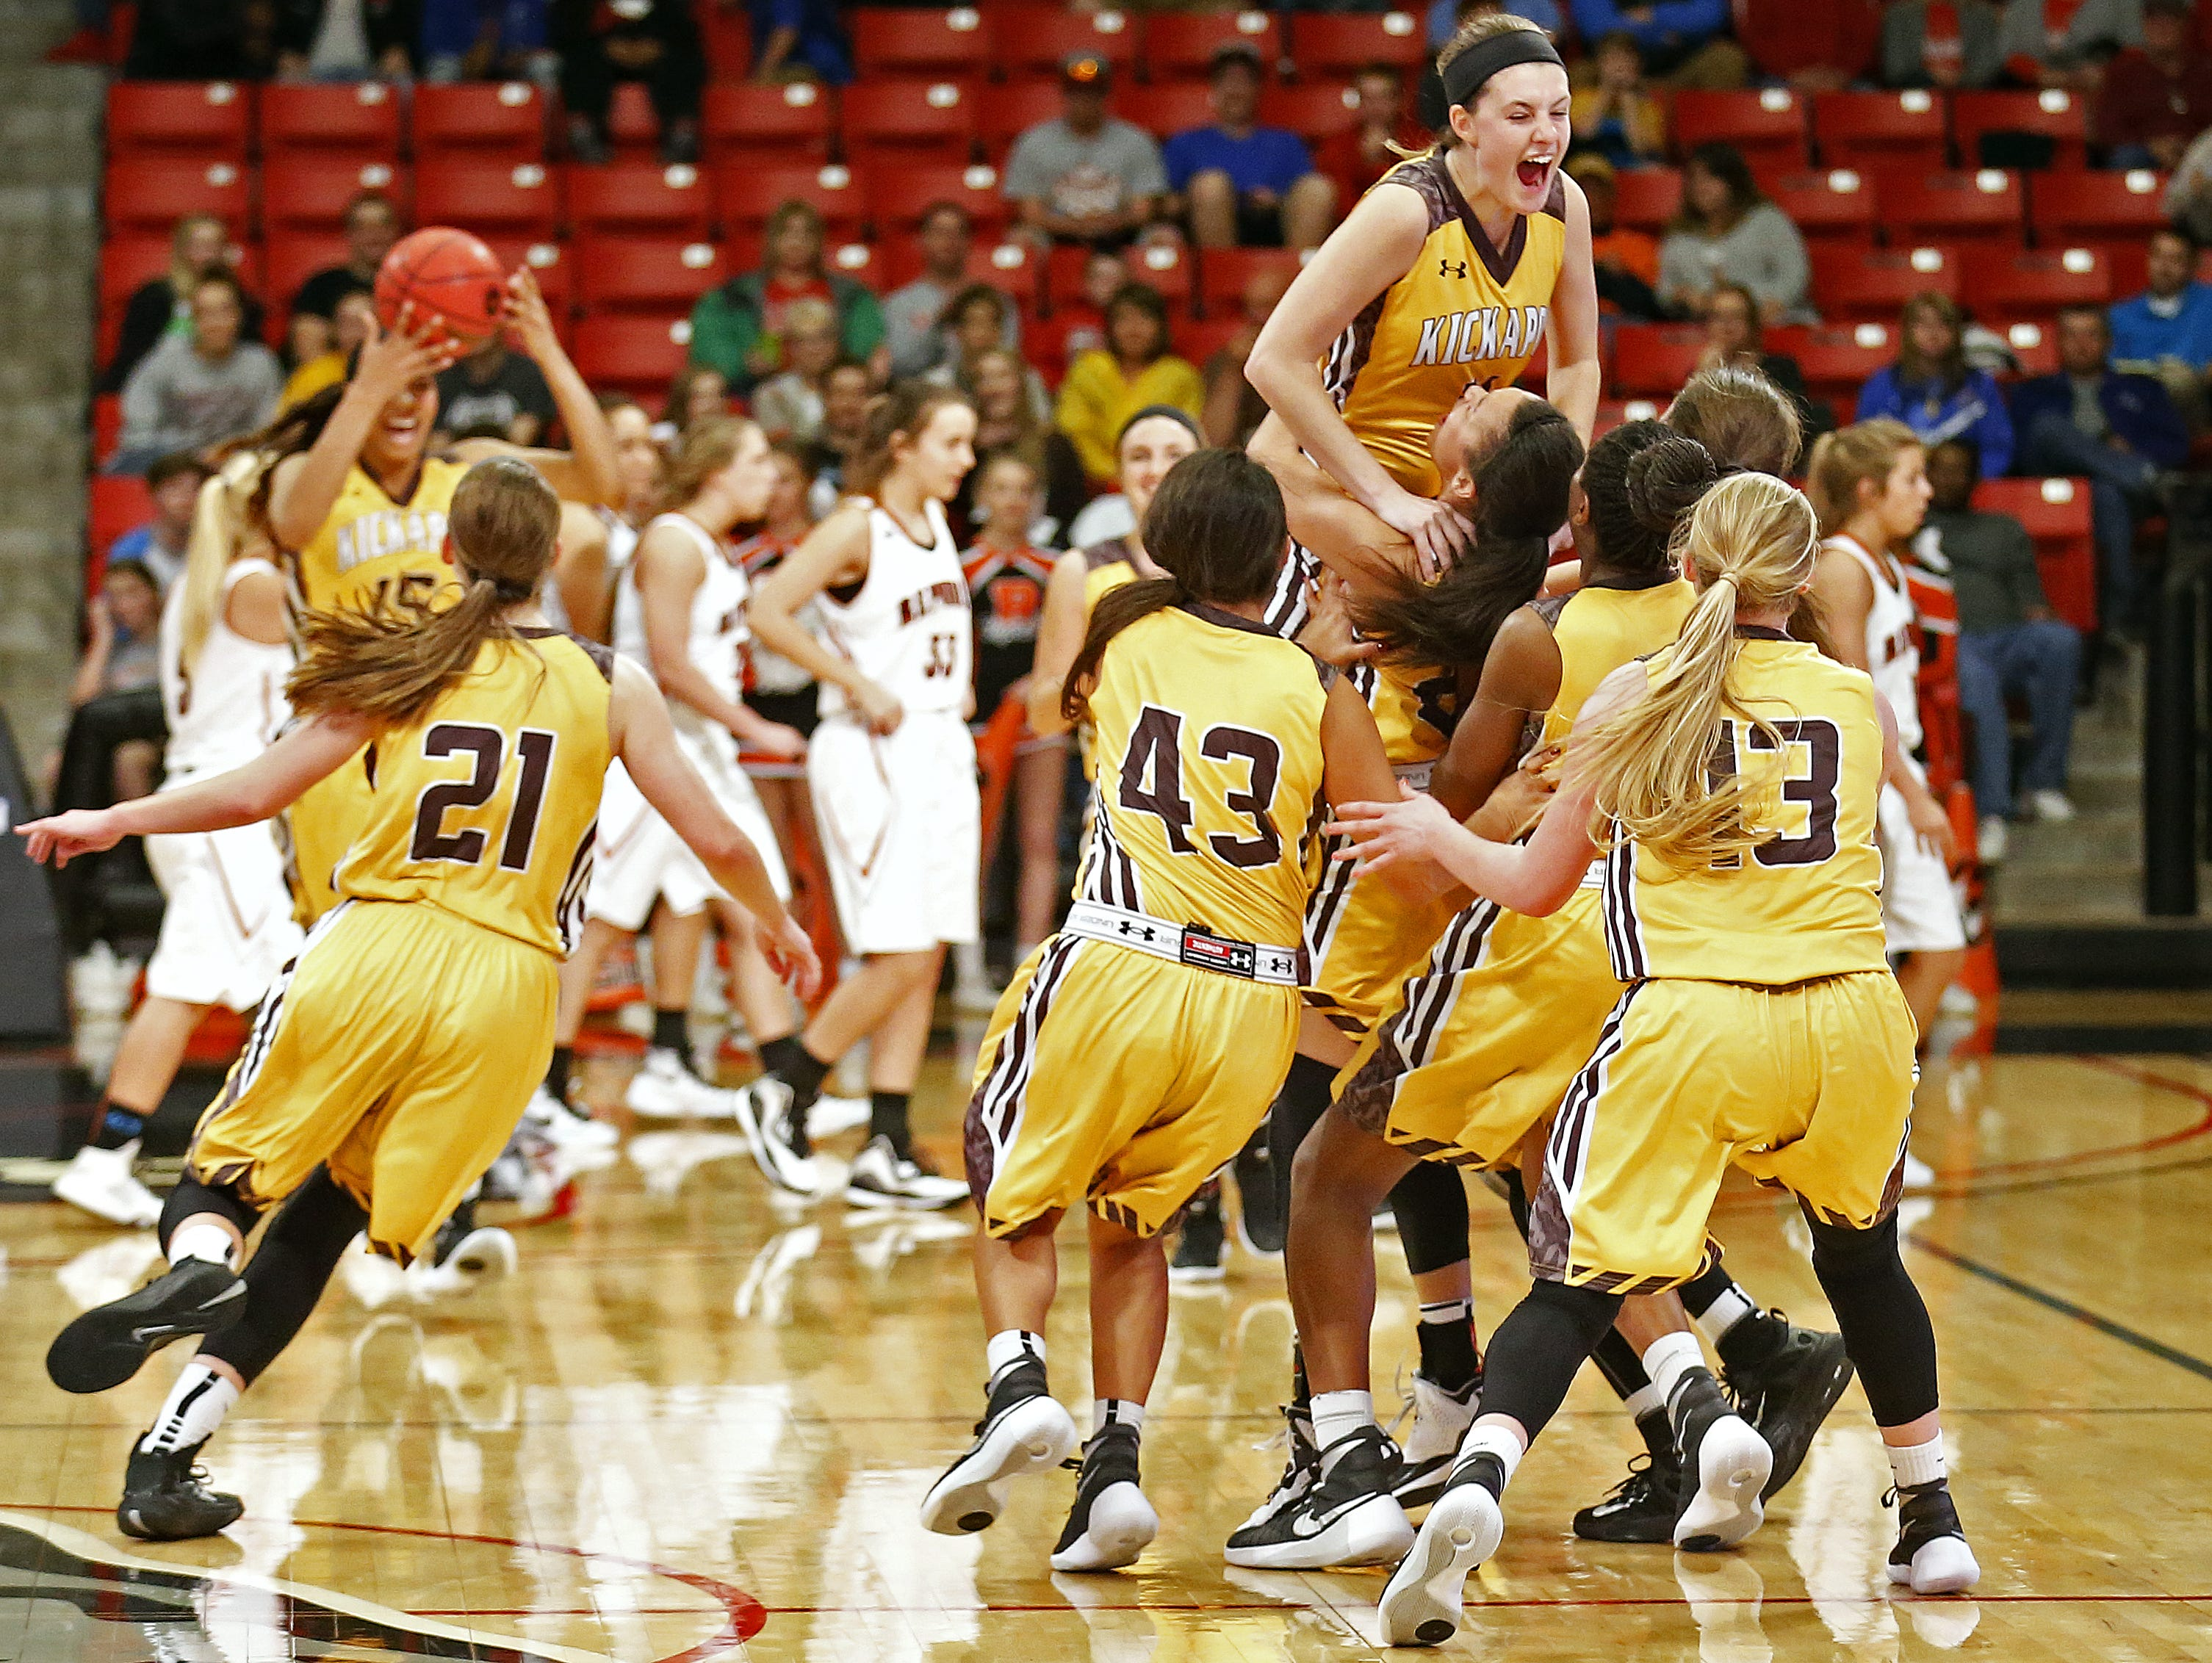 The girls basketball team from Kickapoo High School finishes the 2015-2016 season ranked No. 1 in the Missouri coaches' poll, having won the 2016 Class 5 state championship.